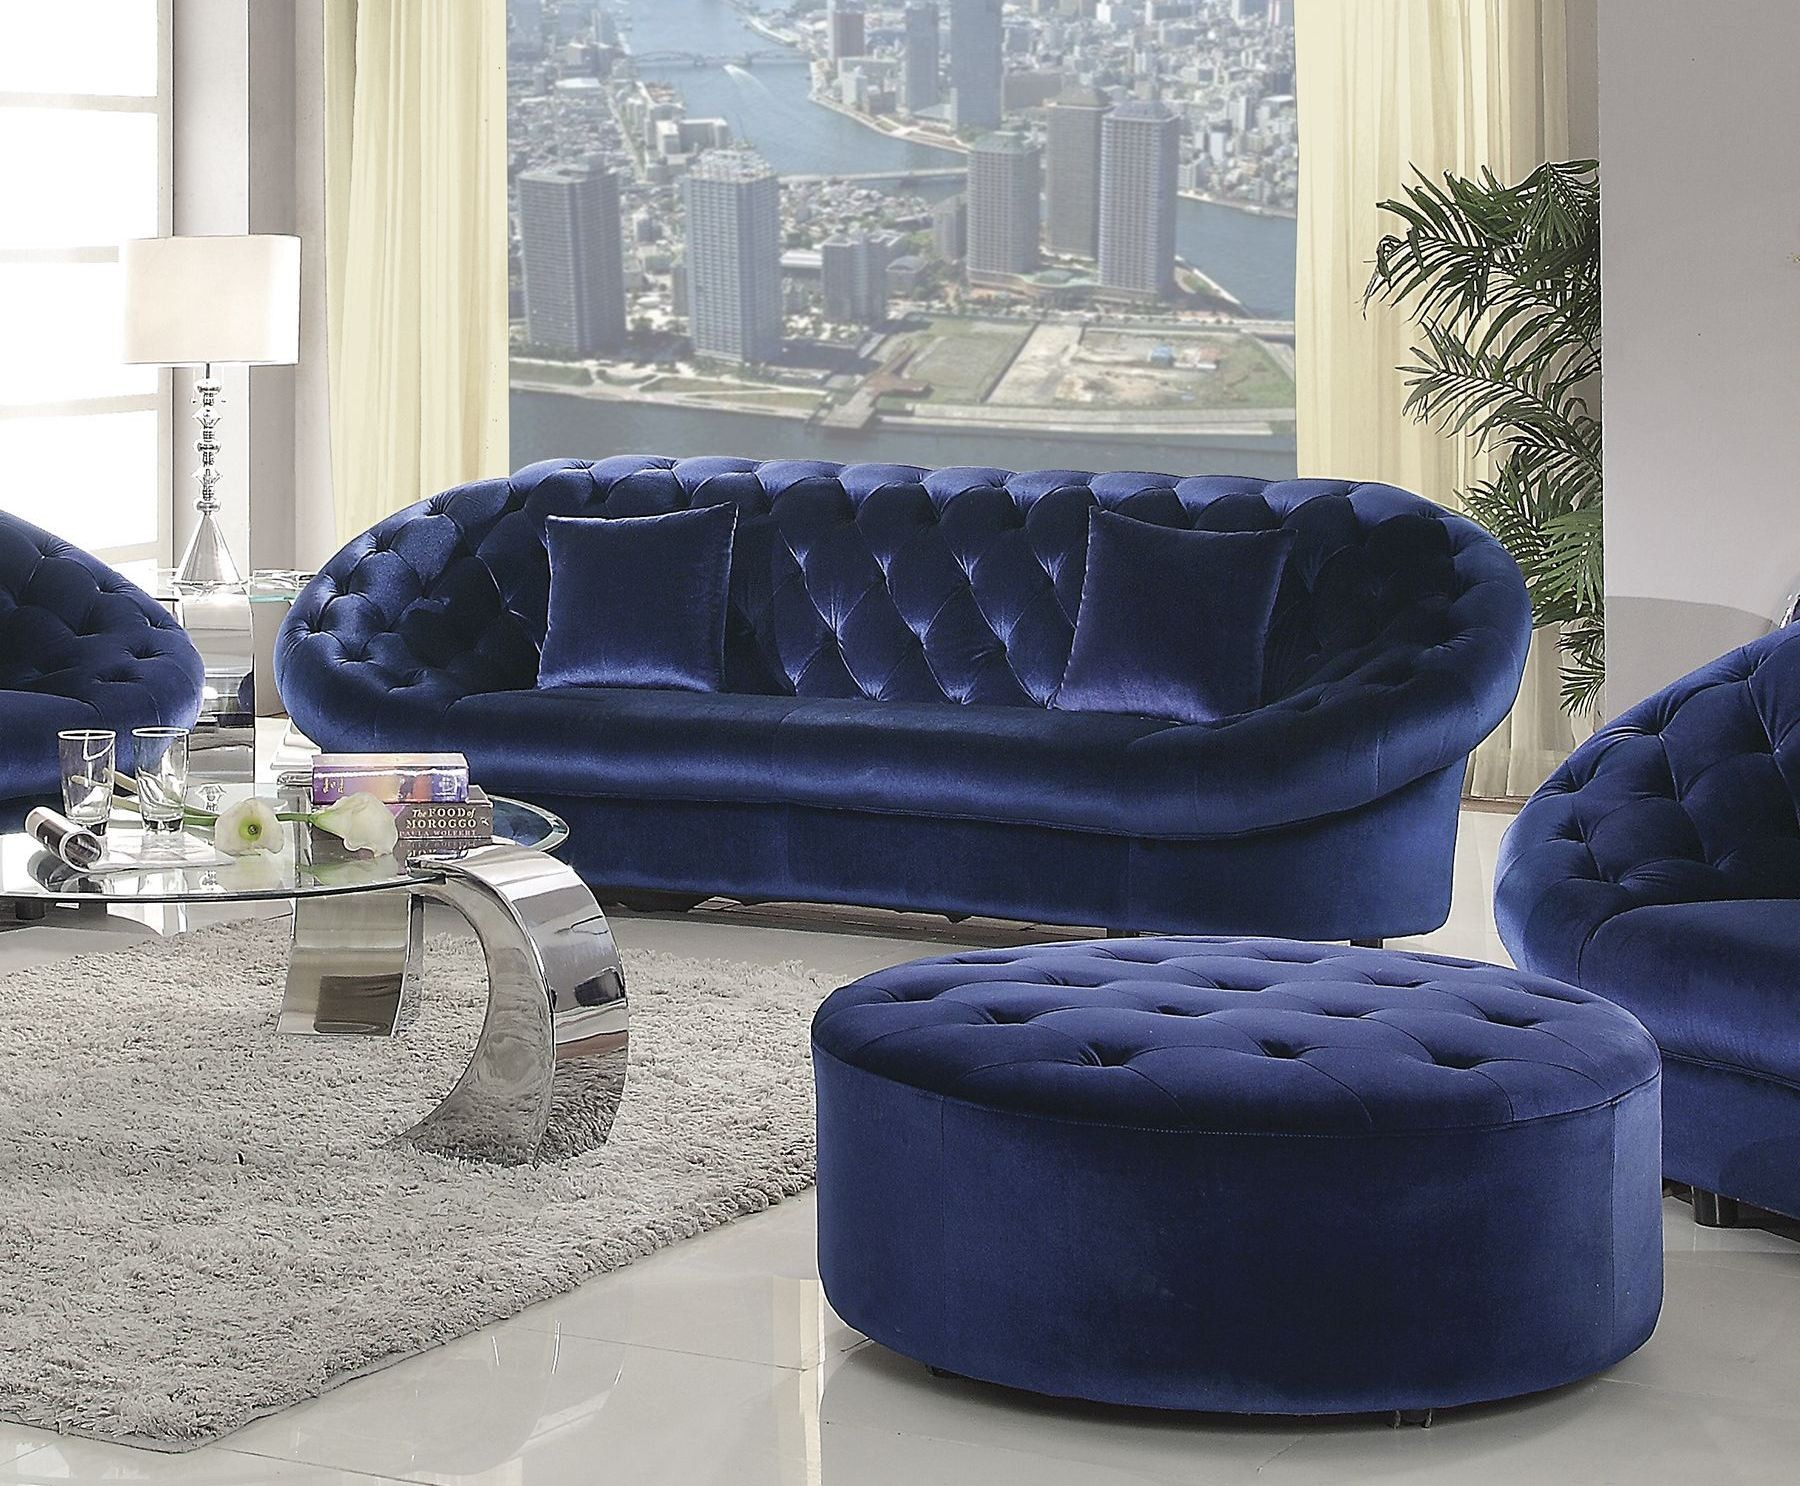 Blue Velvet Chair Romanus Royal Blue Velvet Sofa 511042 Coaster Furniture